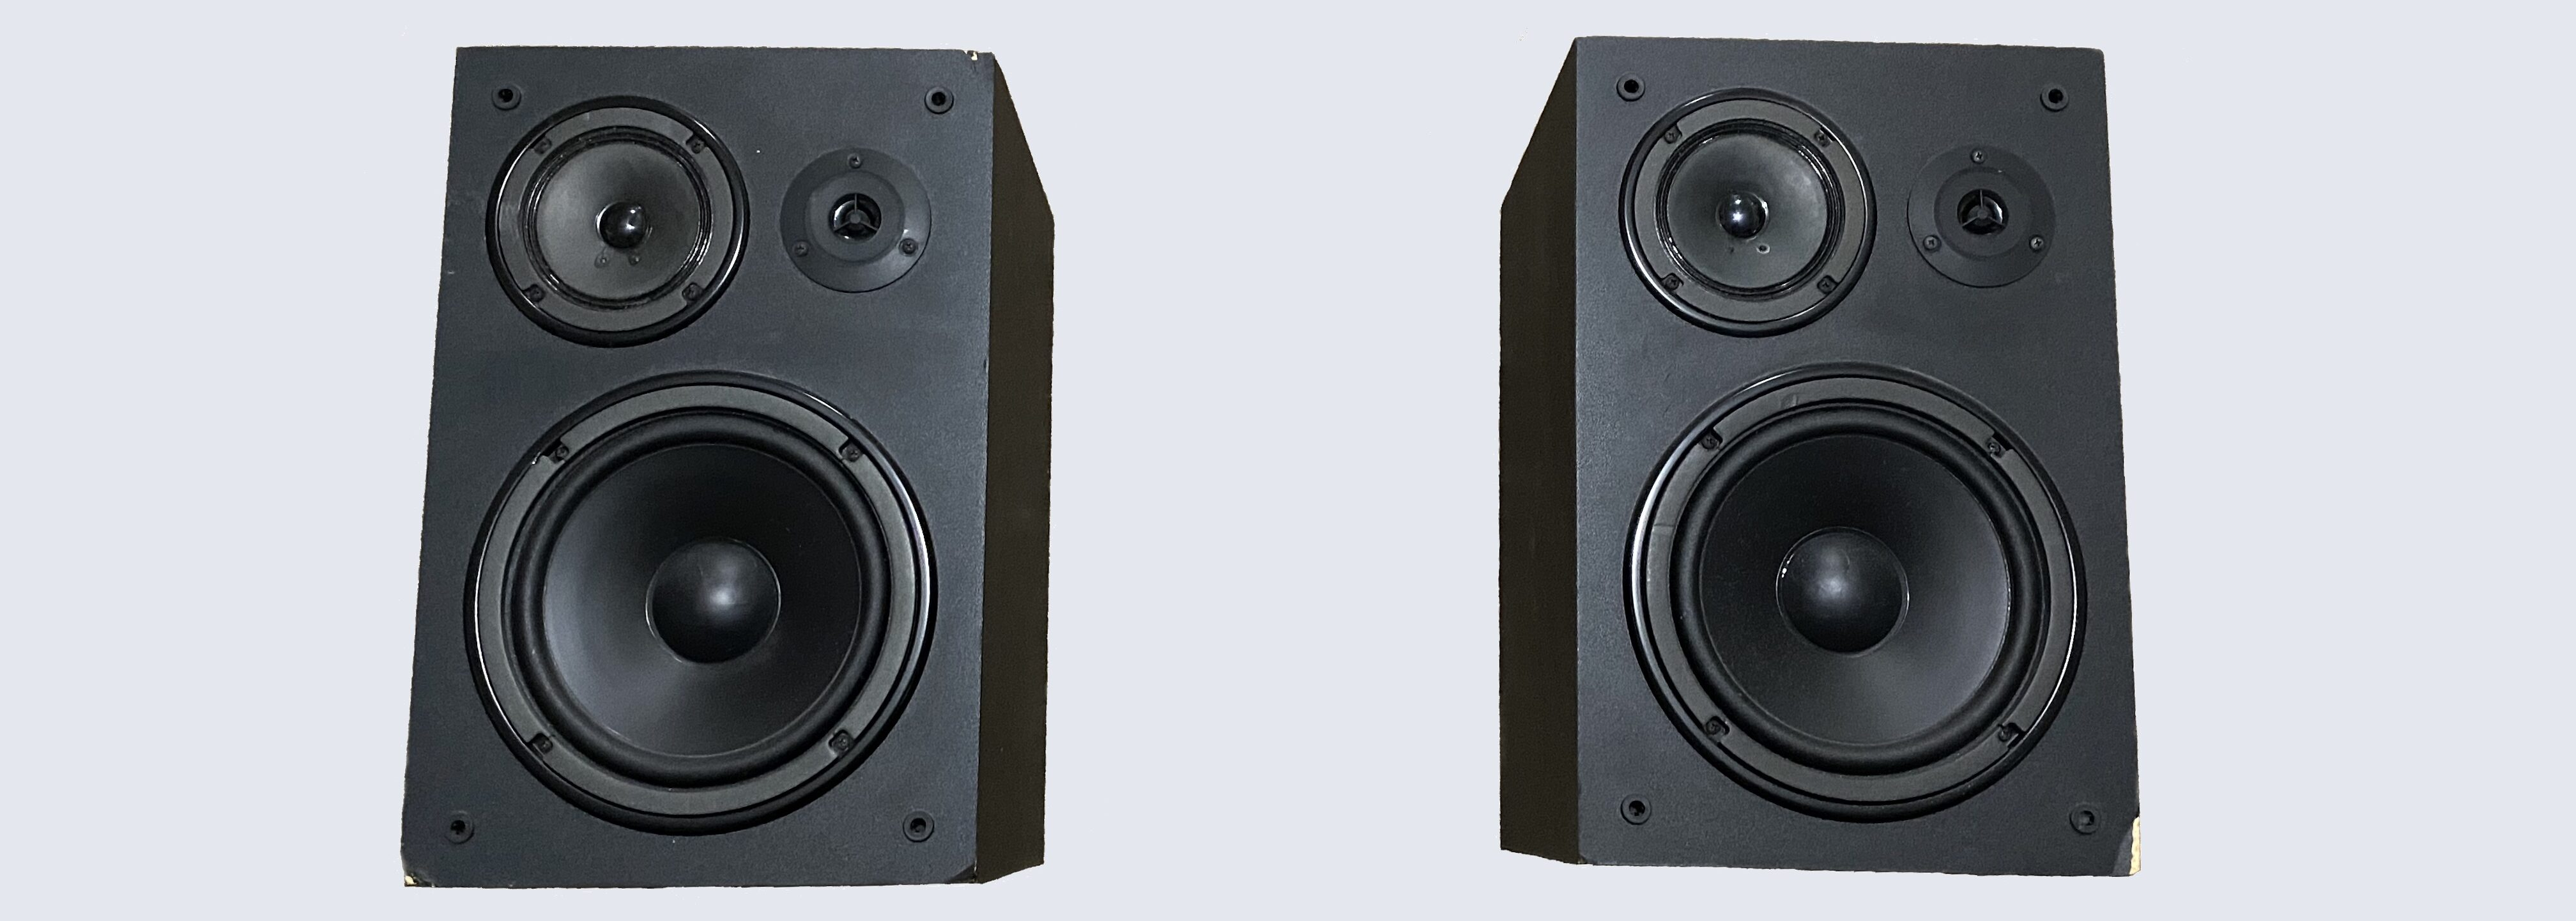 The Yamaha NS-A637 speakers.